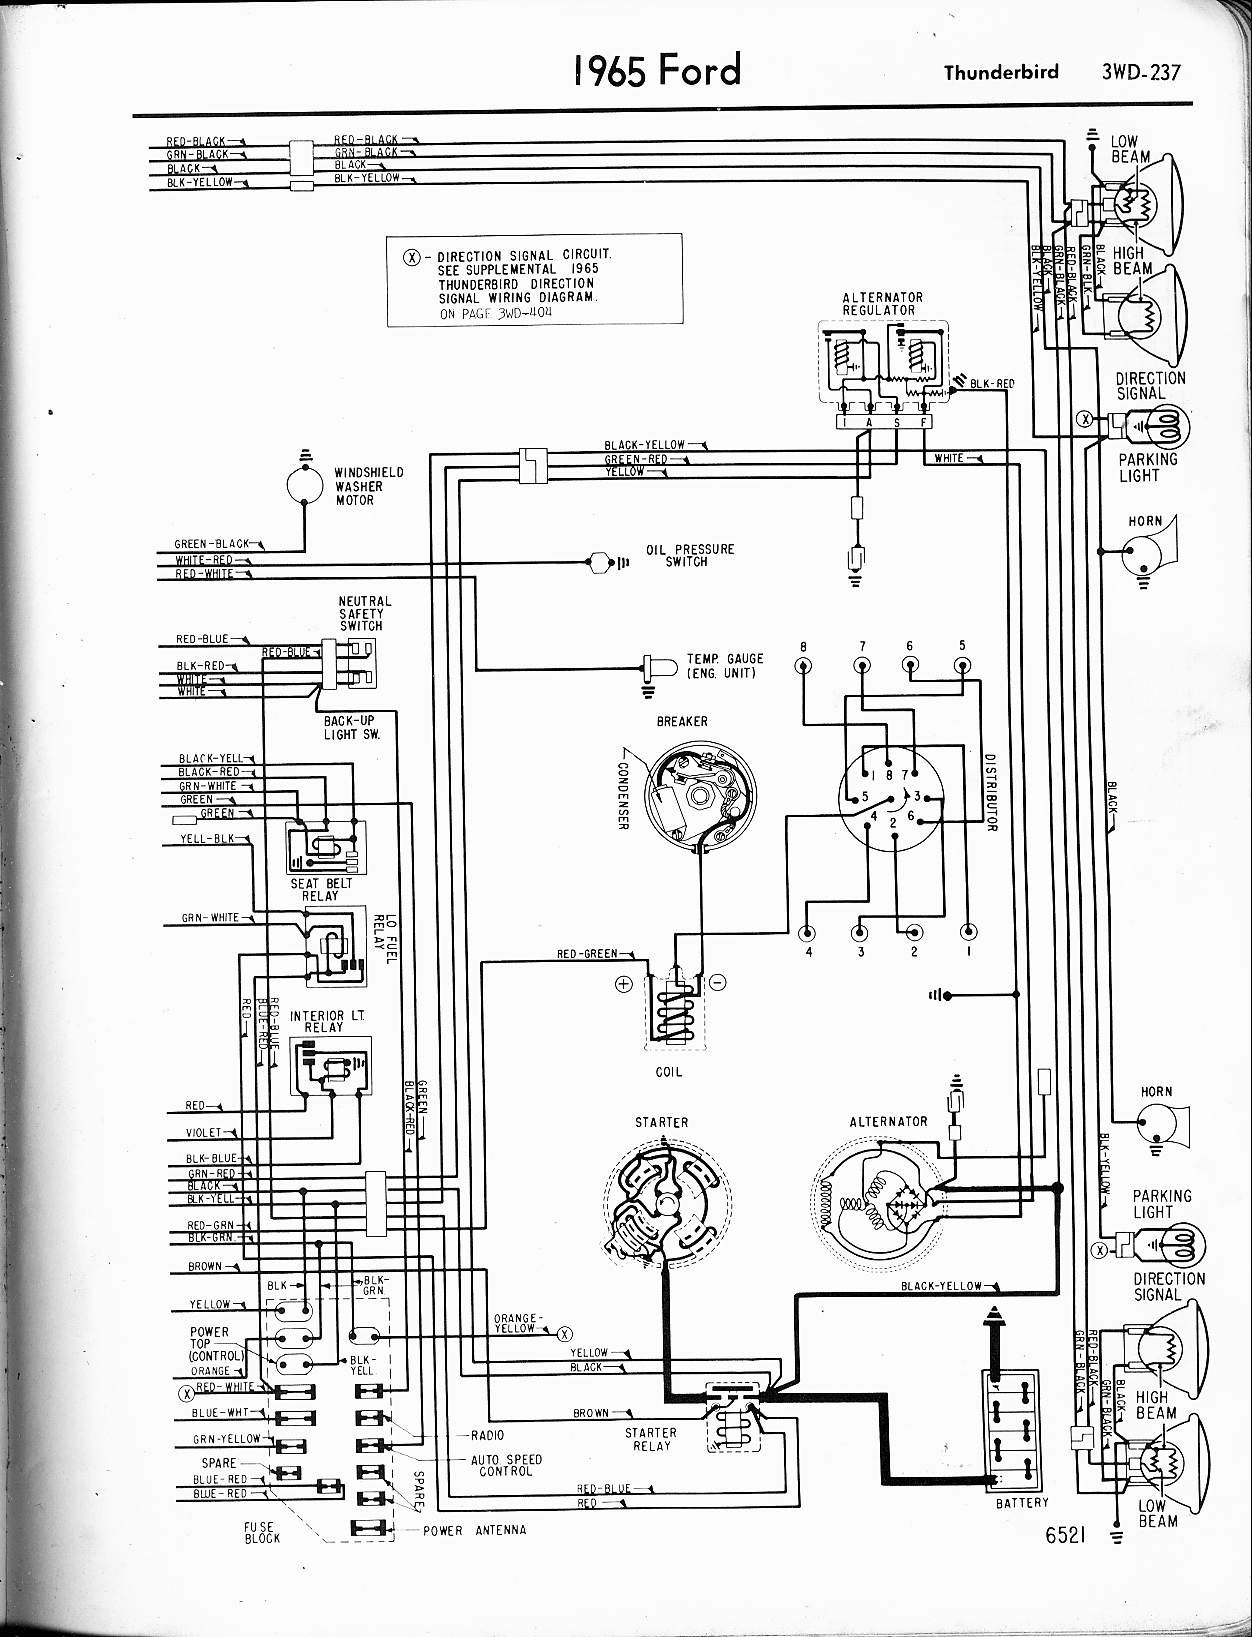 Lincoln Ls Engine Diagram Impala Ignition Coil Wiring Free Charger Circuit Breaker Download Of